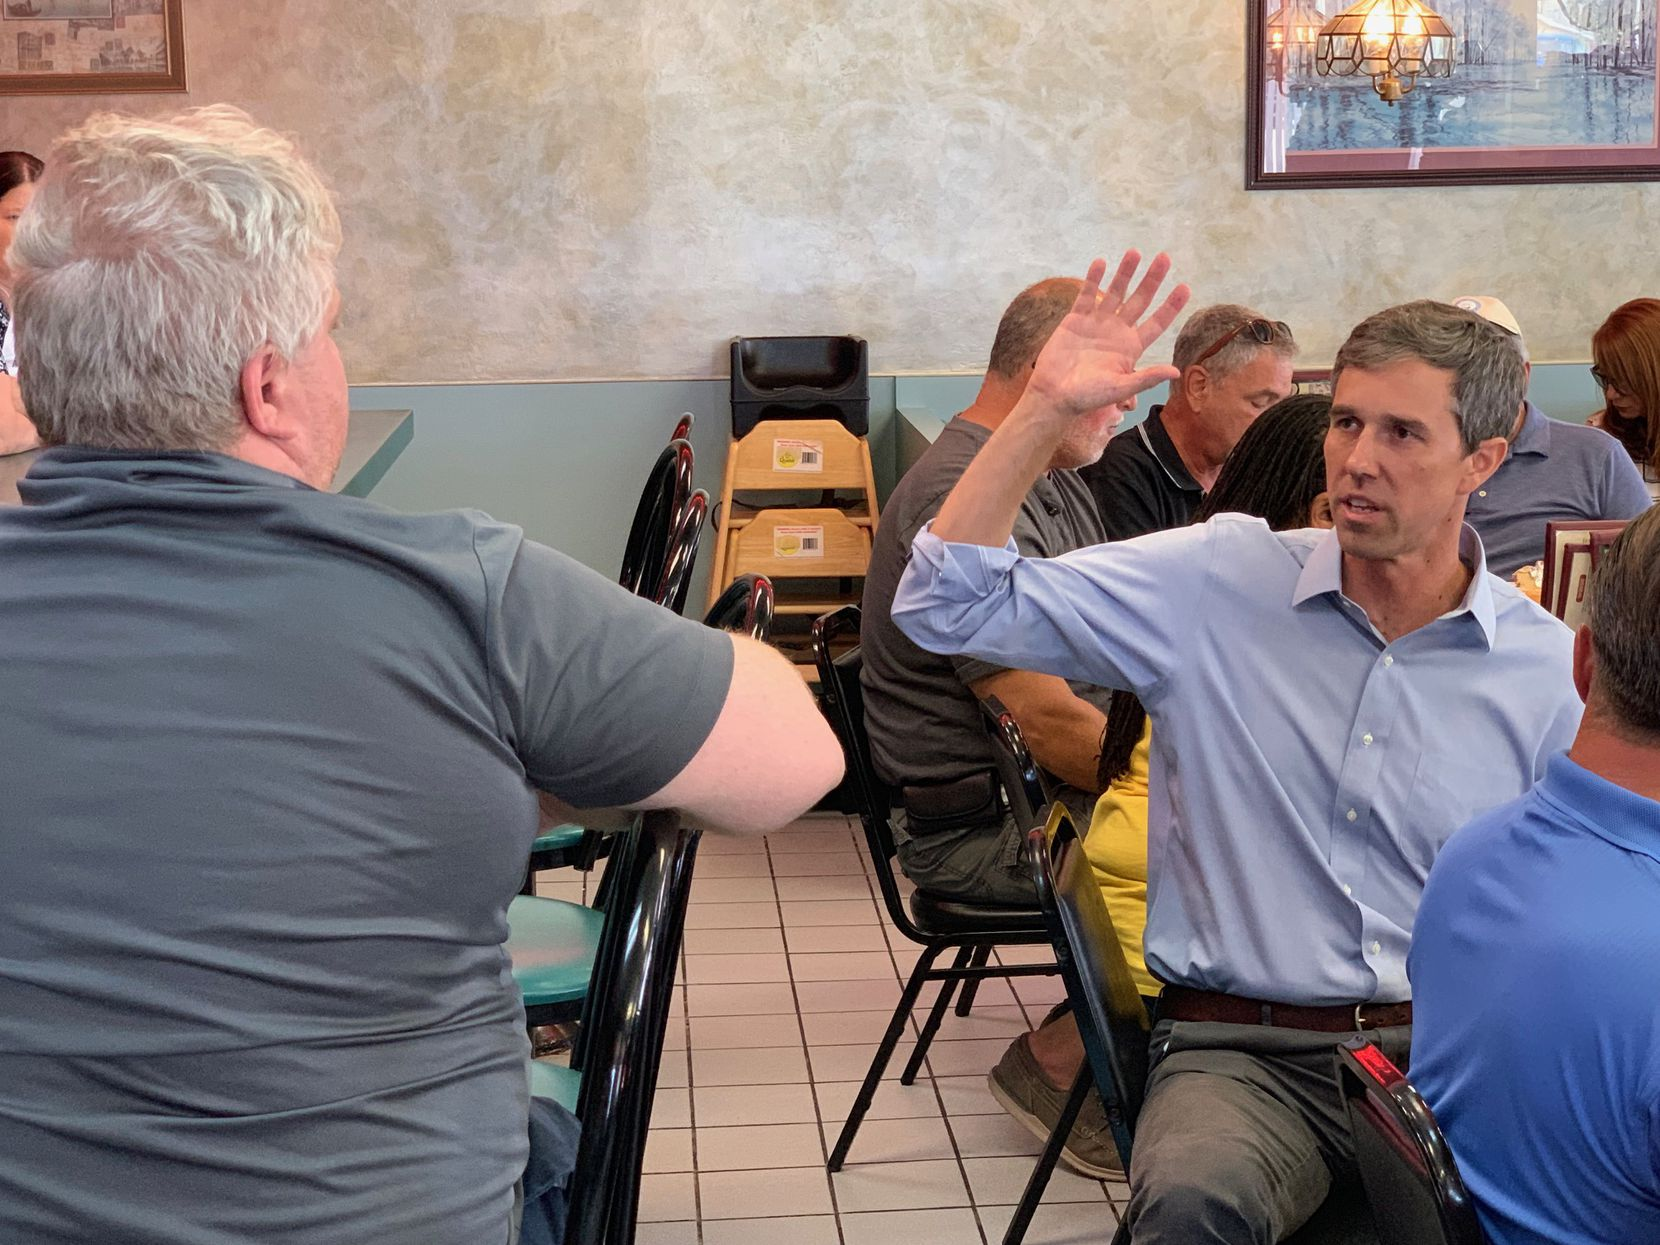 Democratic presidential candidate Beto O'Rourke talks to a potential voter at John's Family Grill in Mount Clemens, Mich.